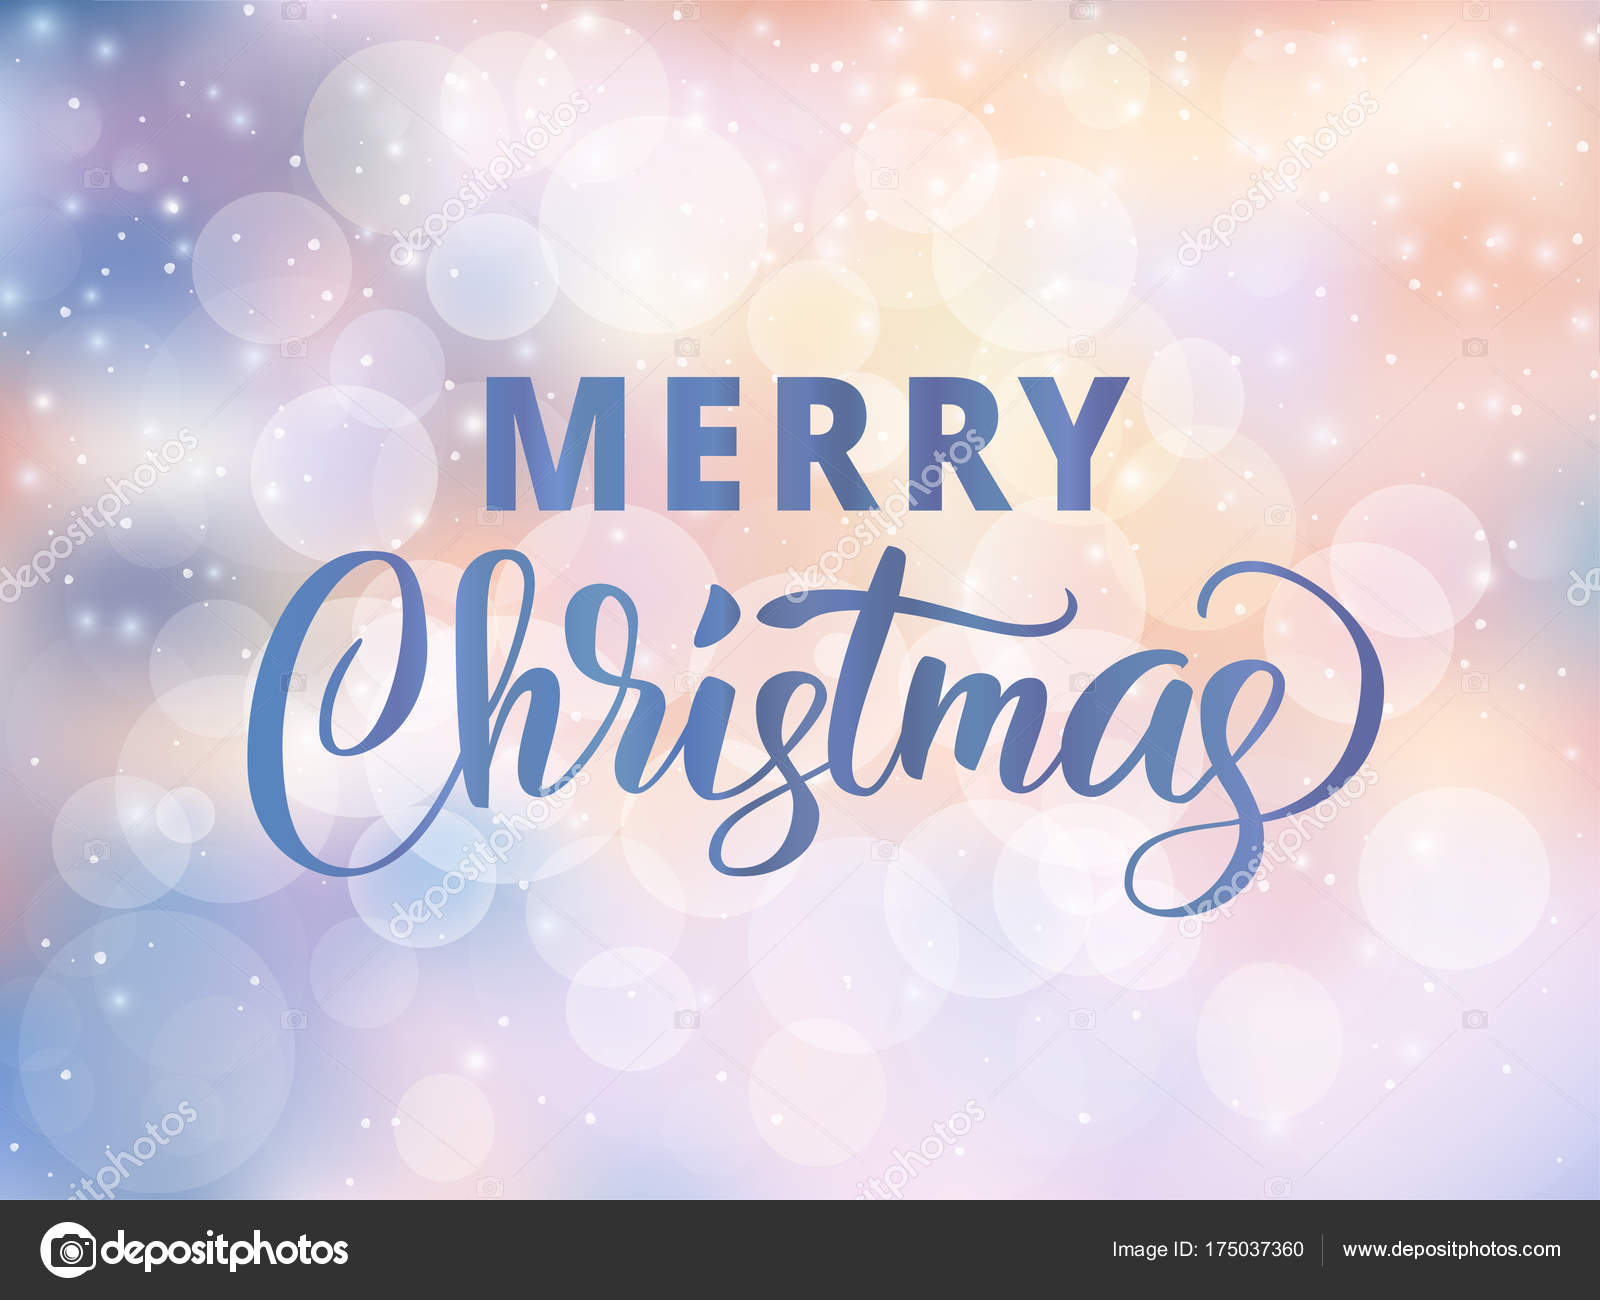 Merry christmas text holiday greetings quote blurred winter holiday greetings quote blurred winter background with falling snow effect m4hsunfo